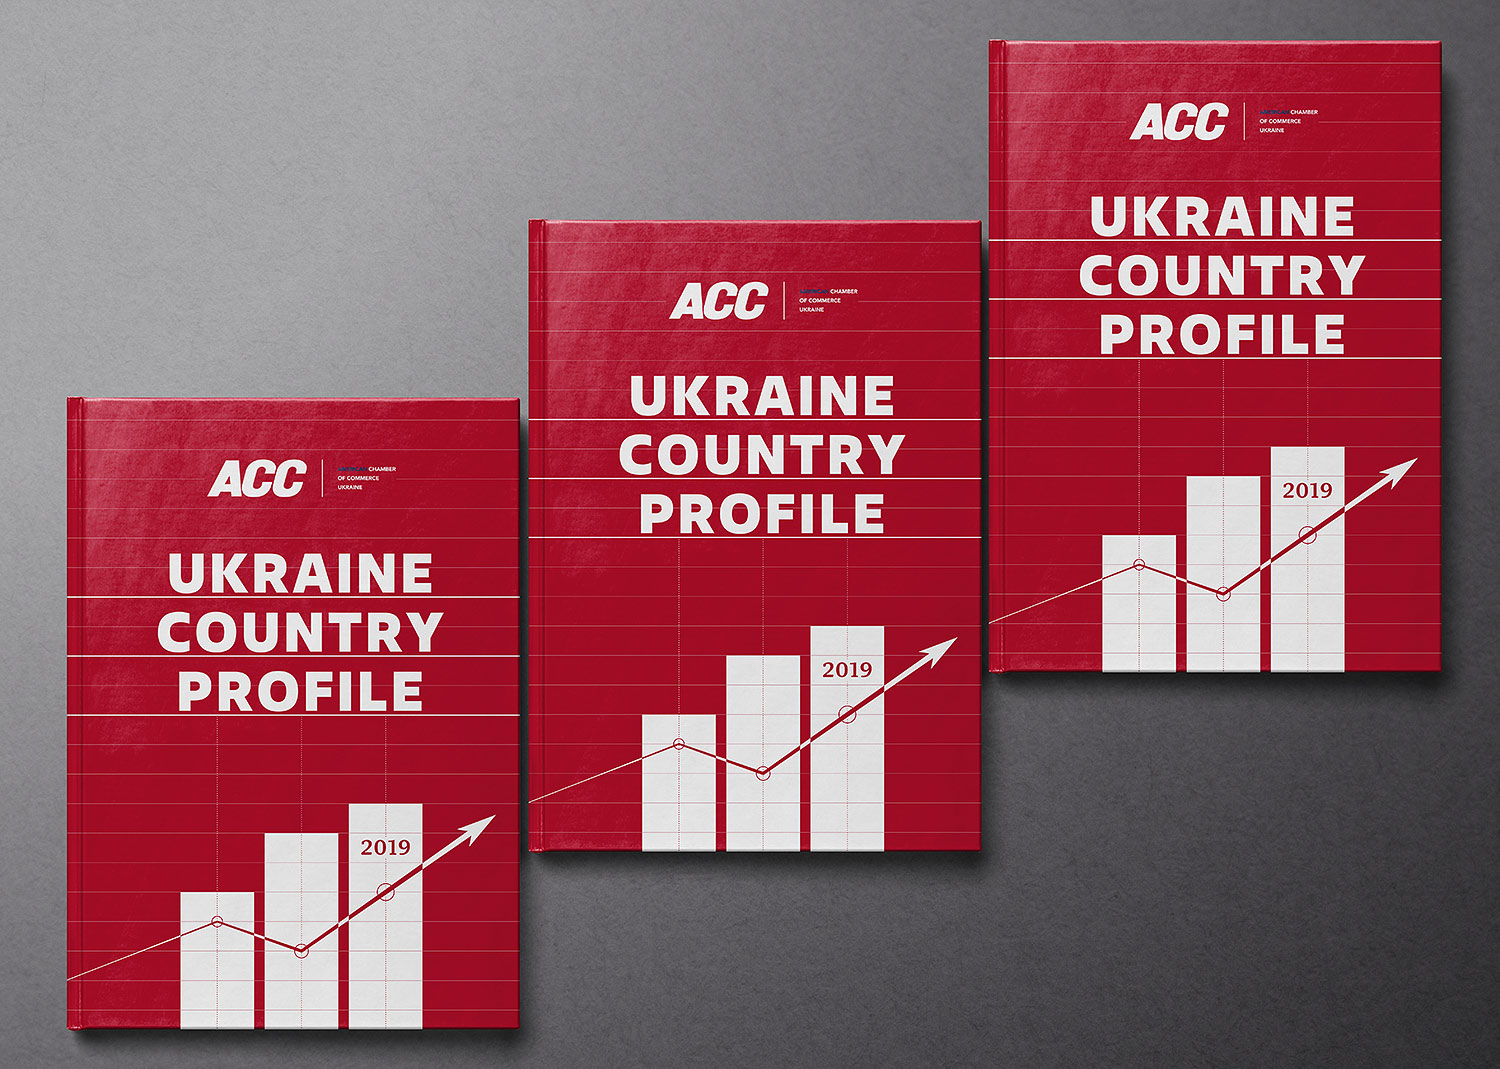 Business design of the financial publication cover. Ukraine Country Profile 2019 book